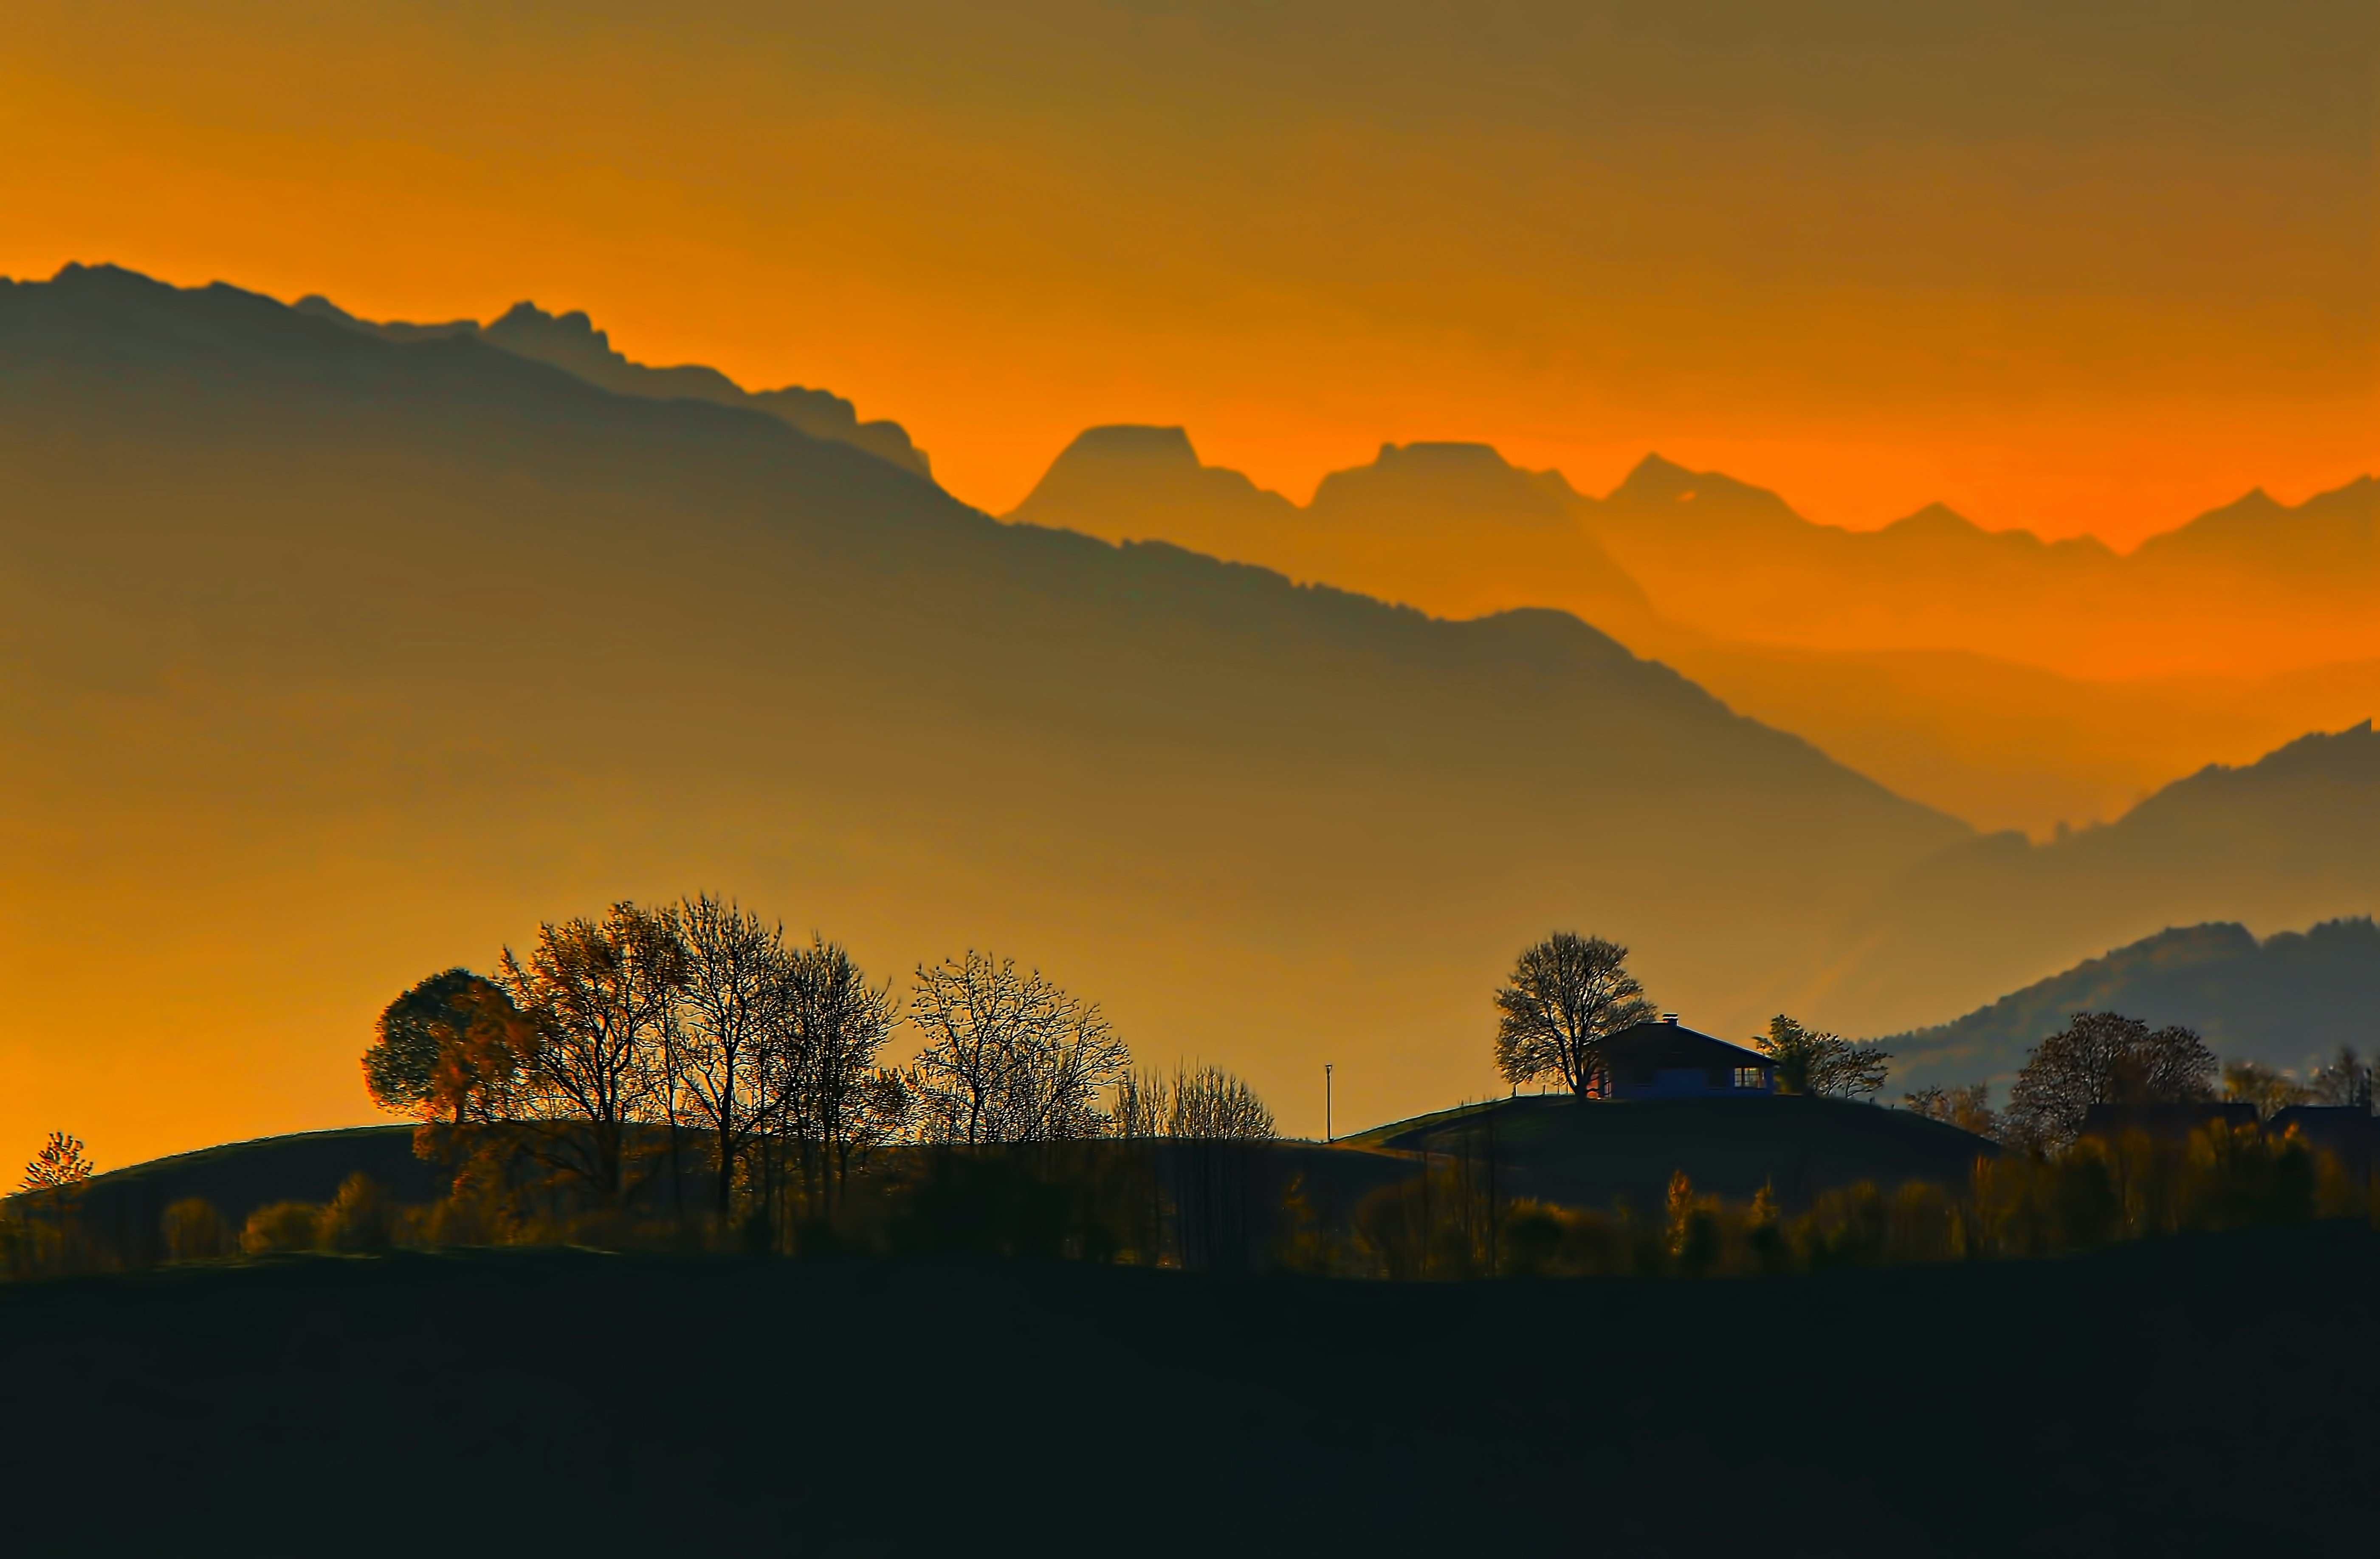 An orange sky over the trees, grass, and mountains of a valley at sunset